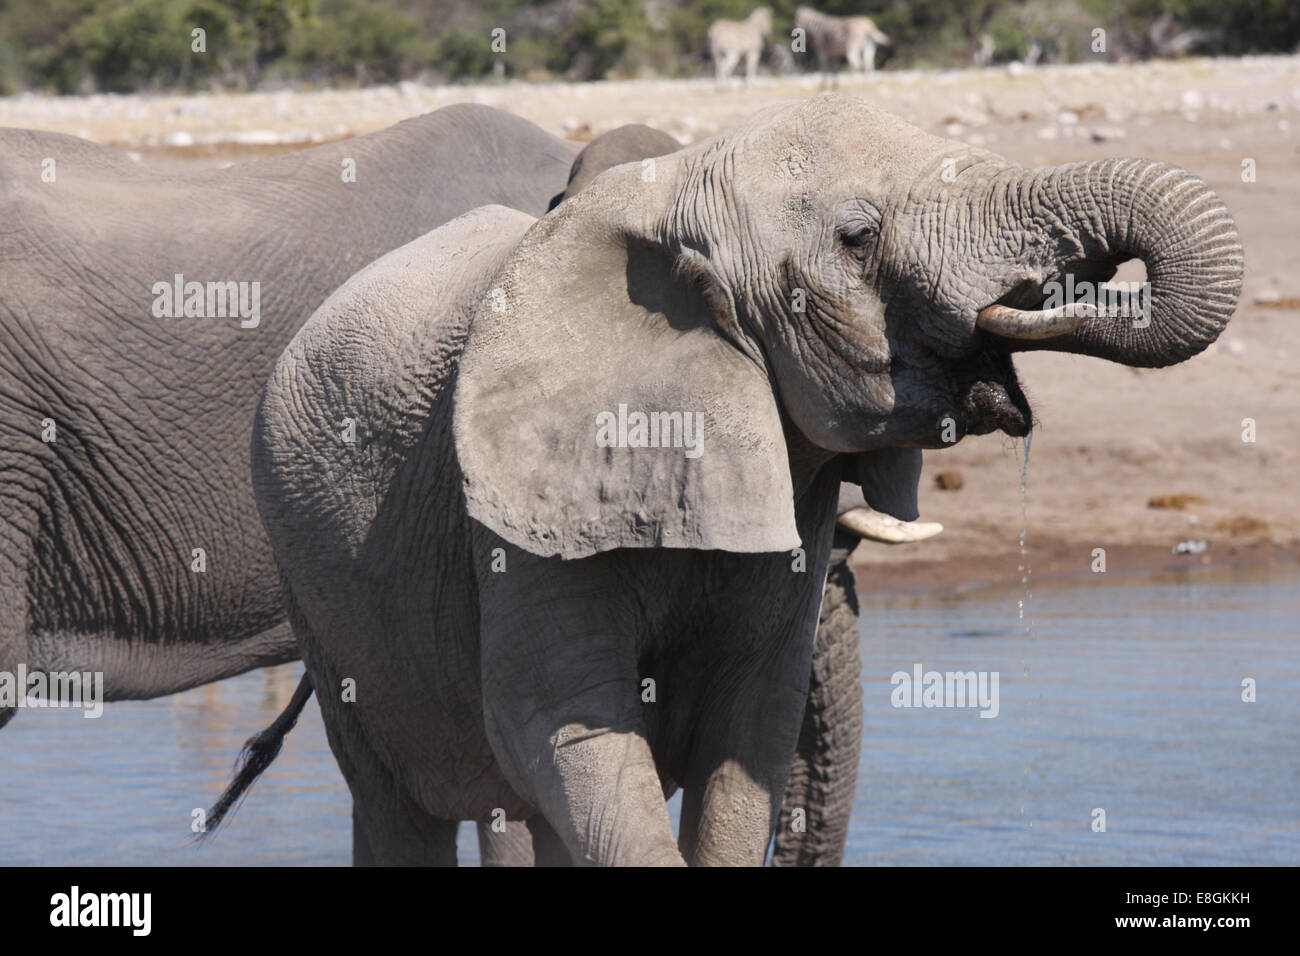 Portrait of an Elephant drinking at watering hole, Namibia - Stock Image